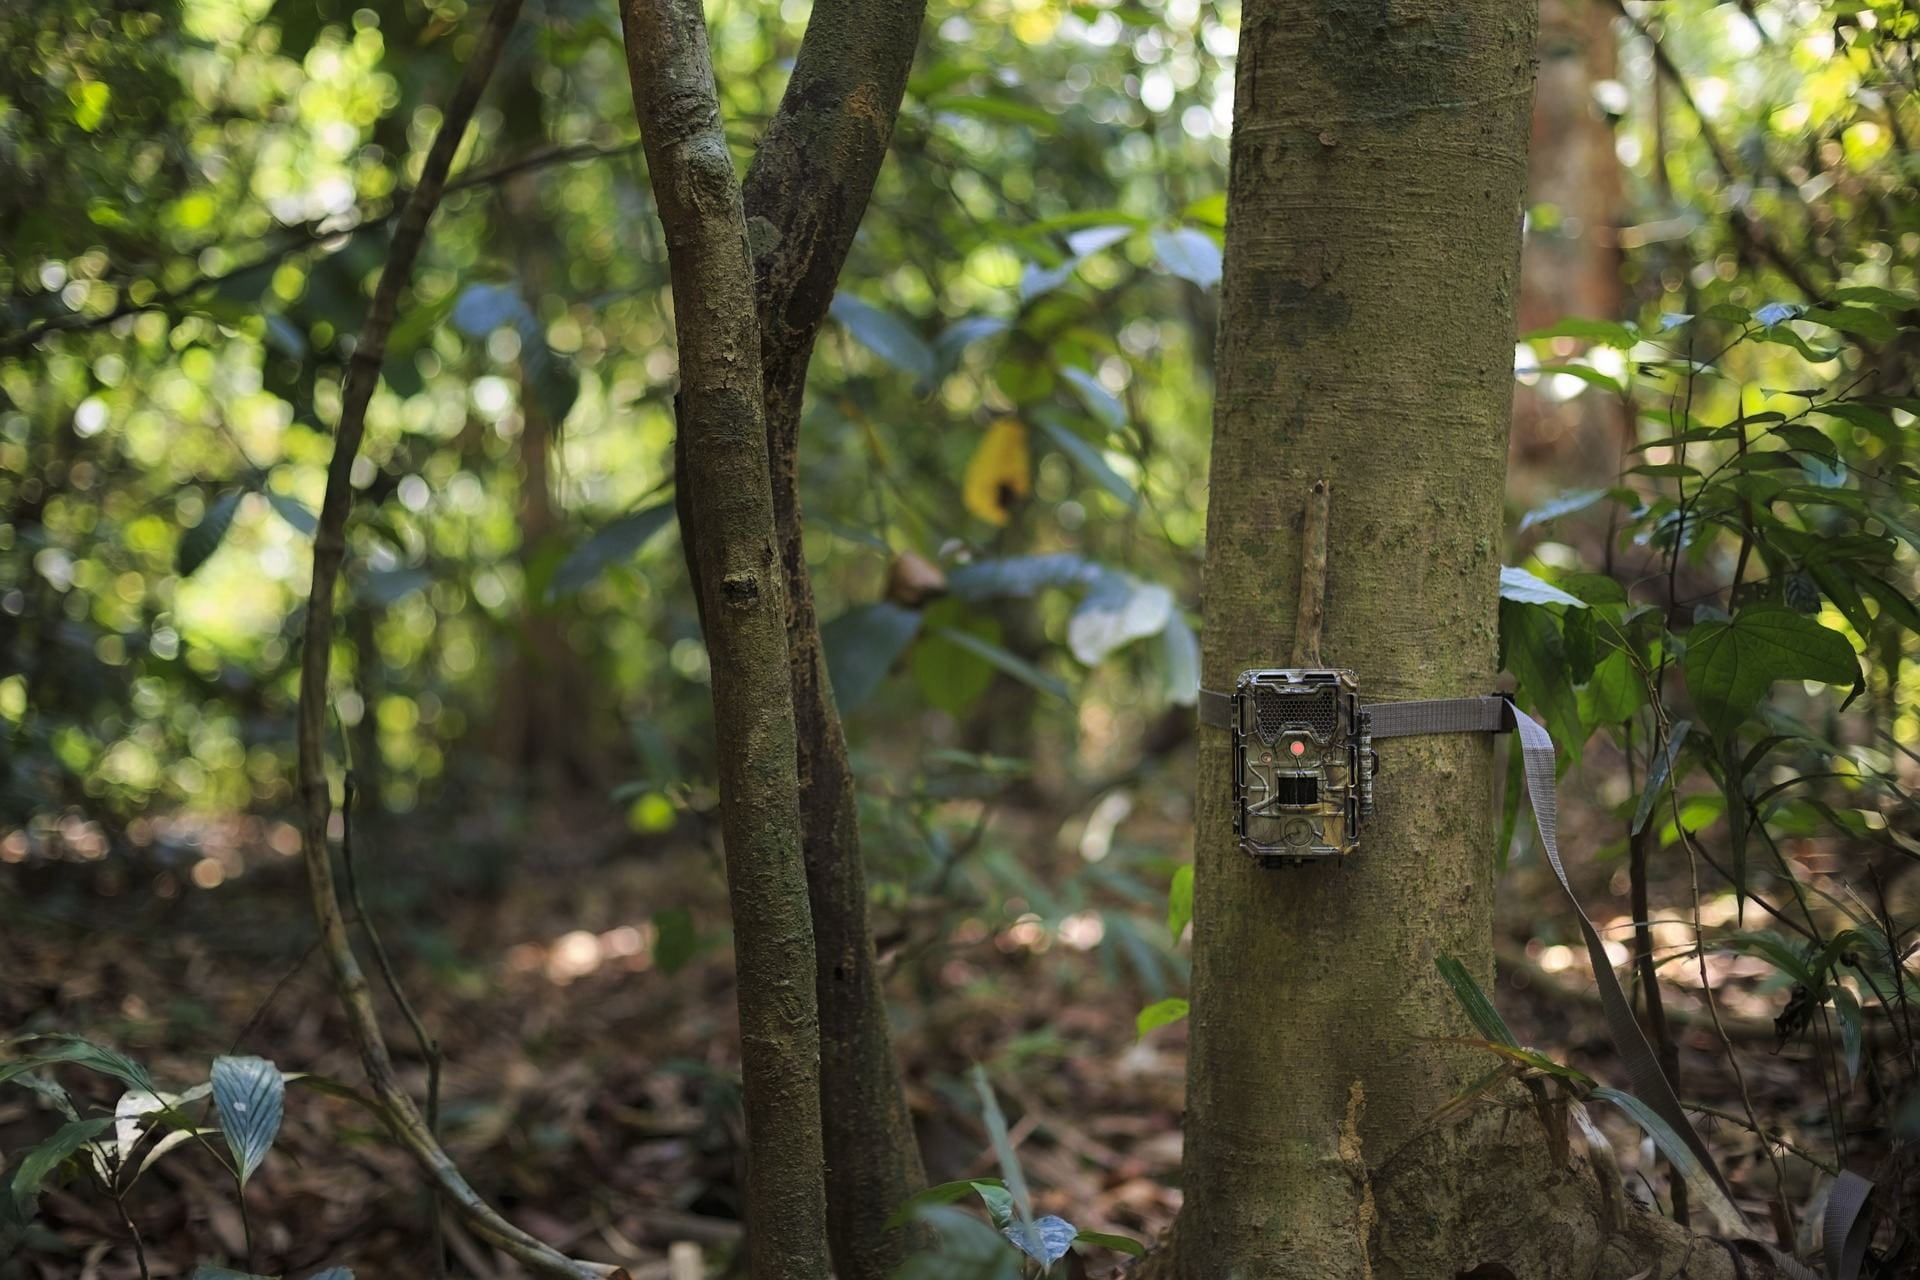 Pictured is a camera trap attached to a tree in a forest. Even using camera traps for observational research on wildlife requires approval from IACUC.